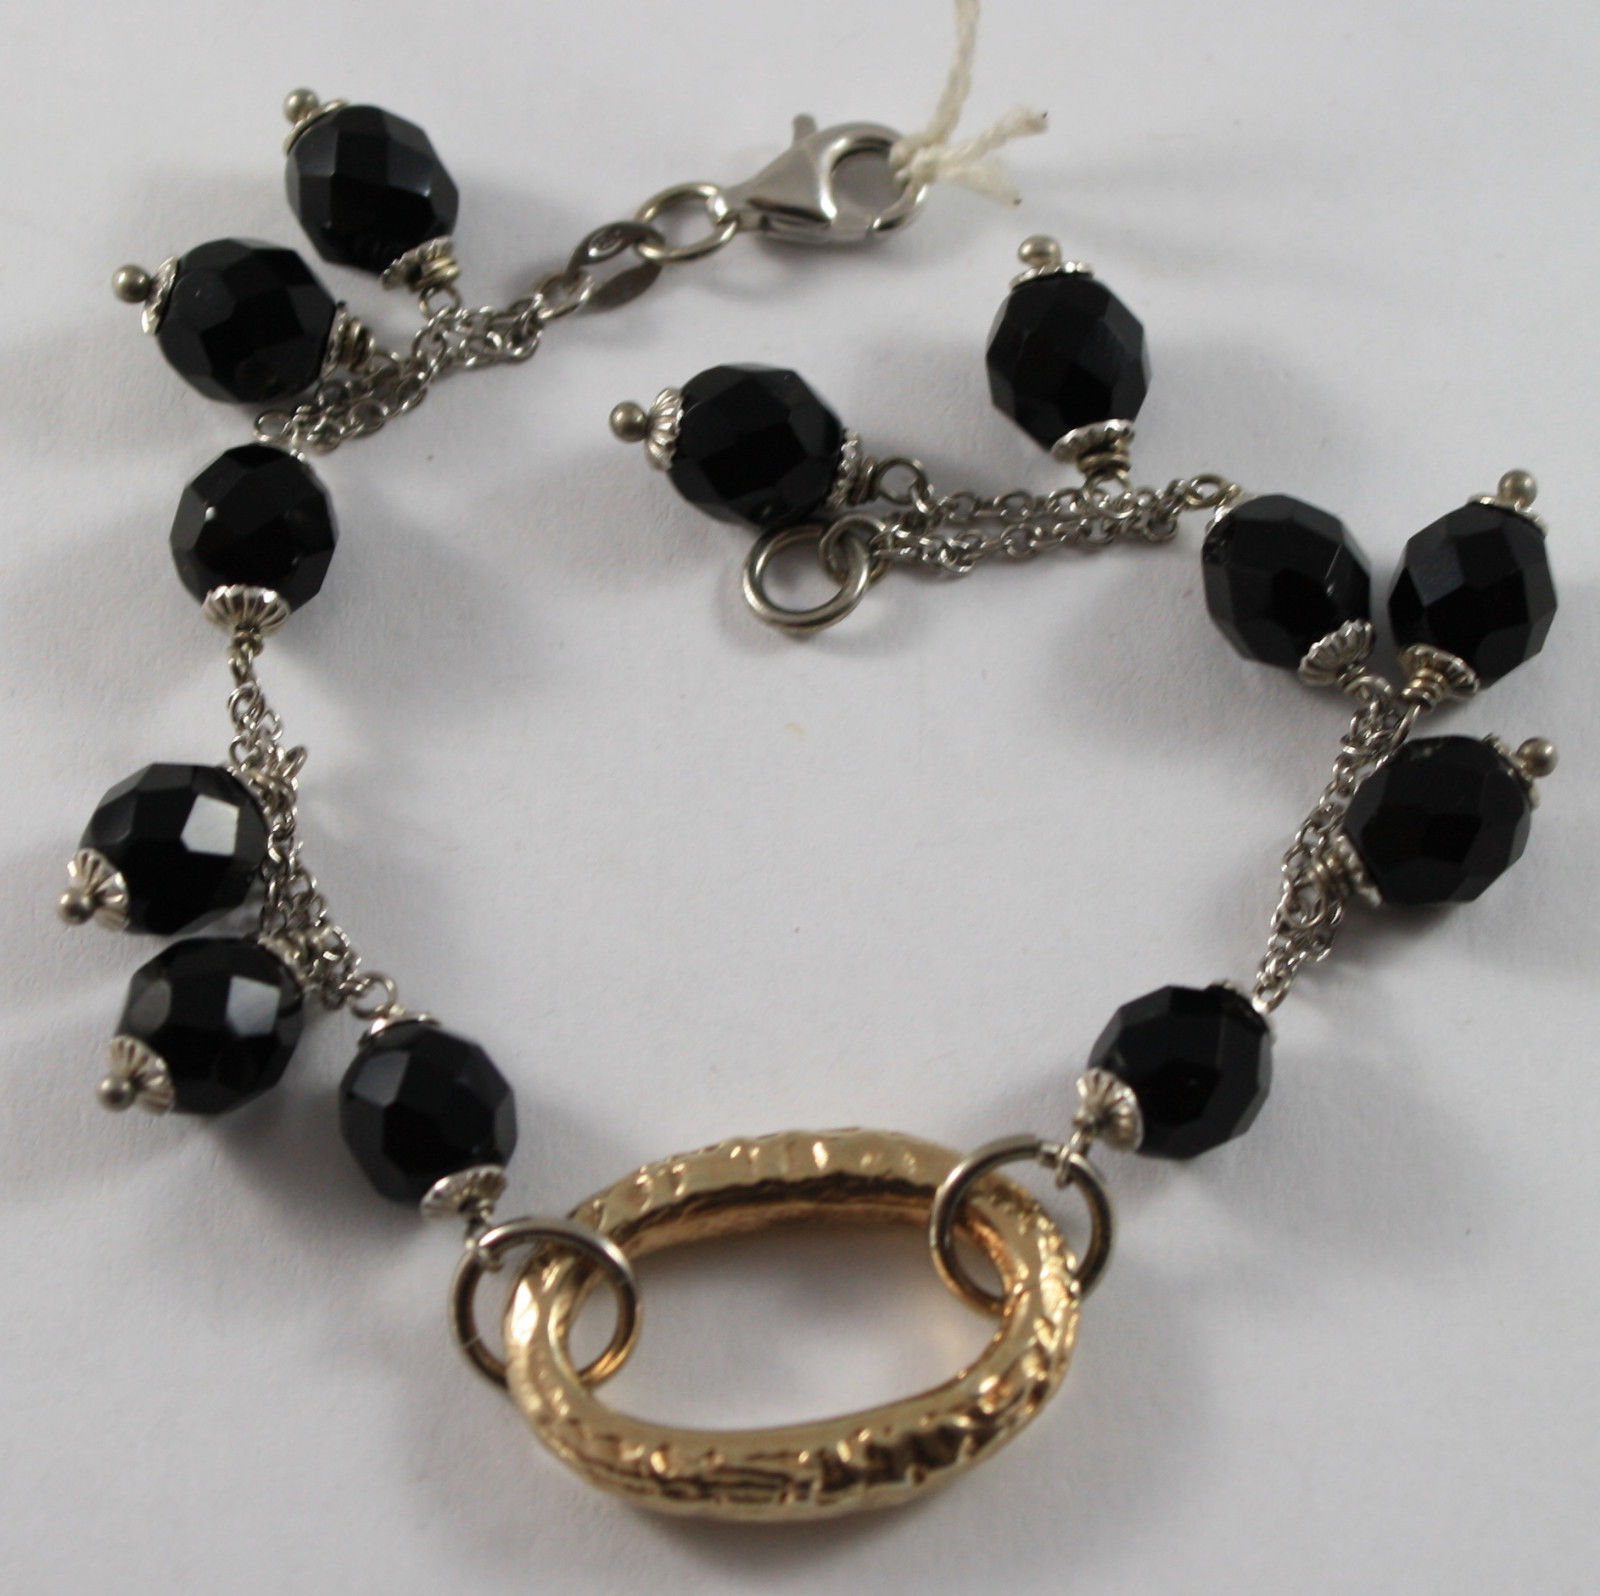 .925 RHODIUM SILVER BRACELET WITH GOLDEN OVAL AND BLACK ONYX